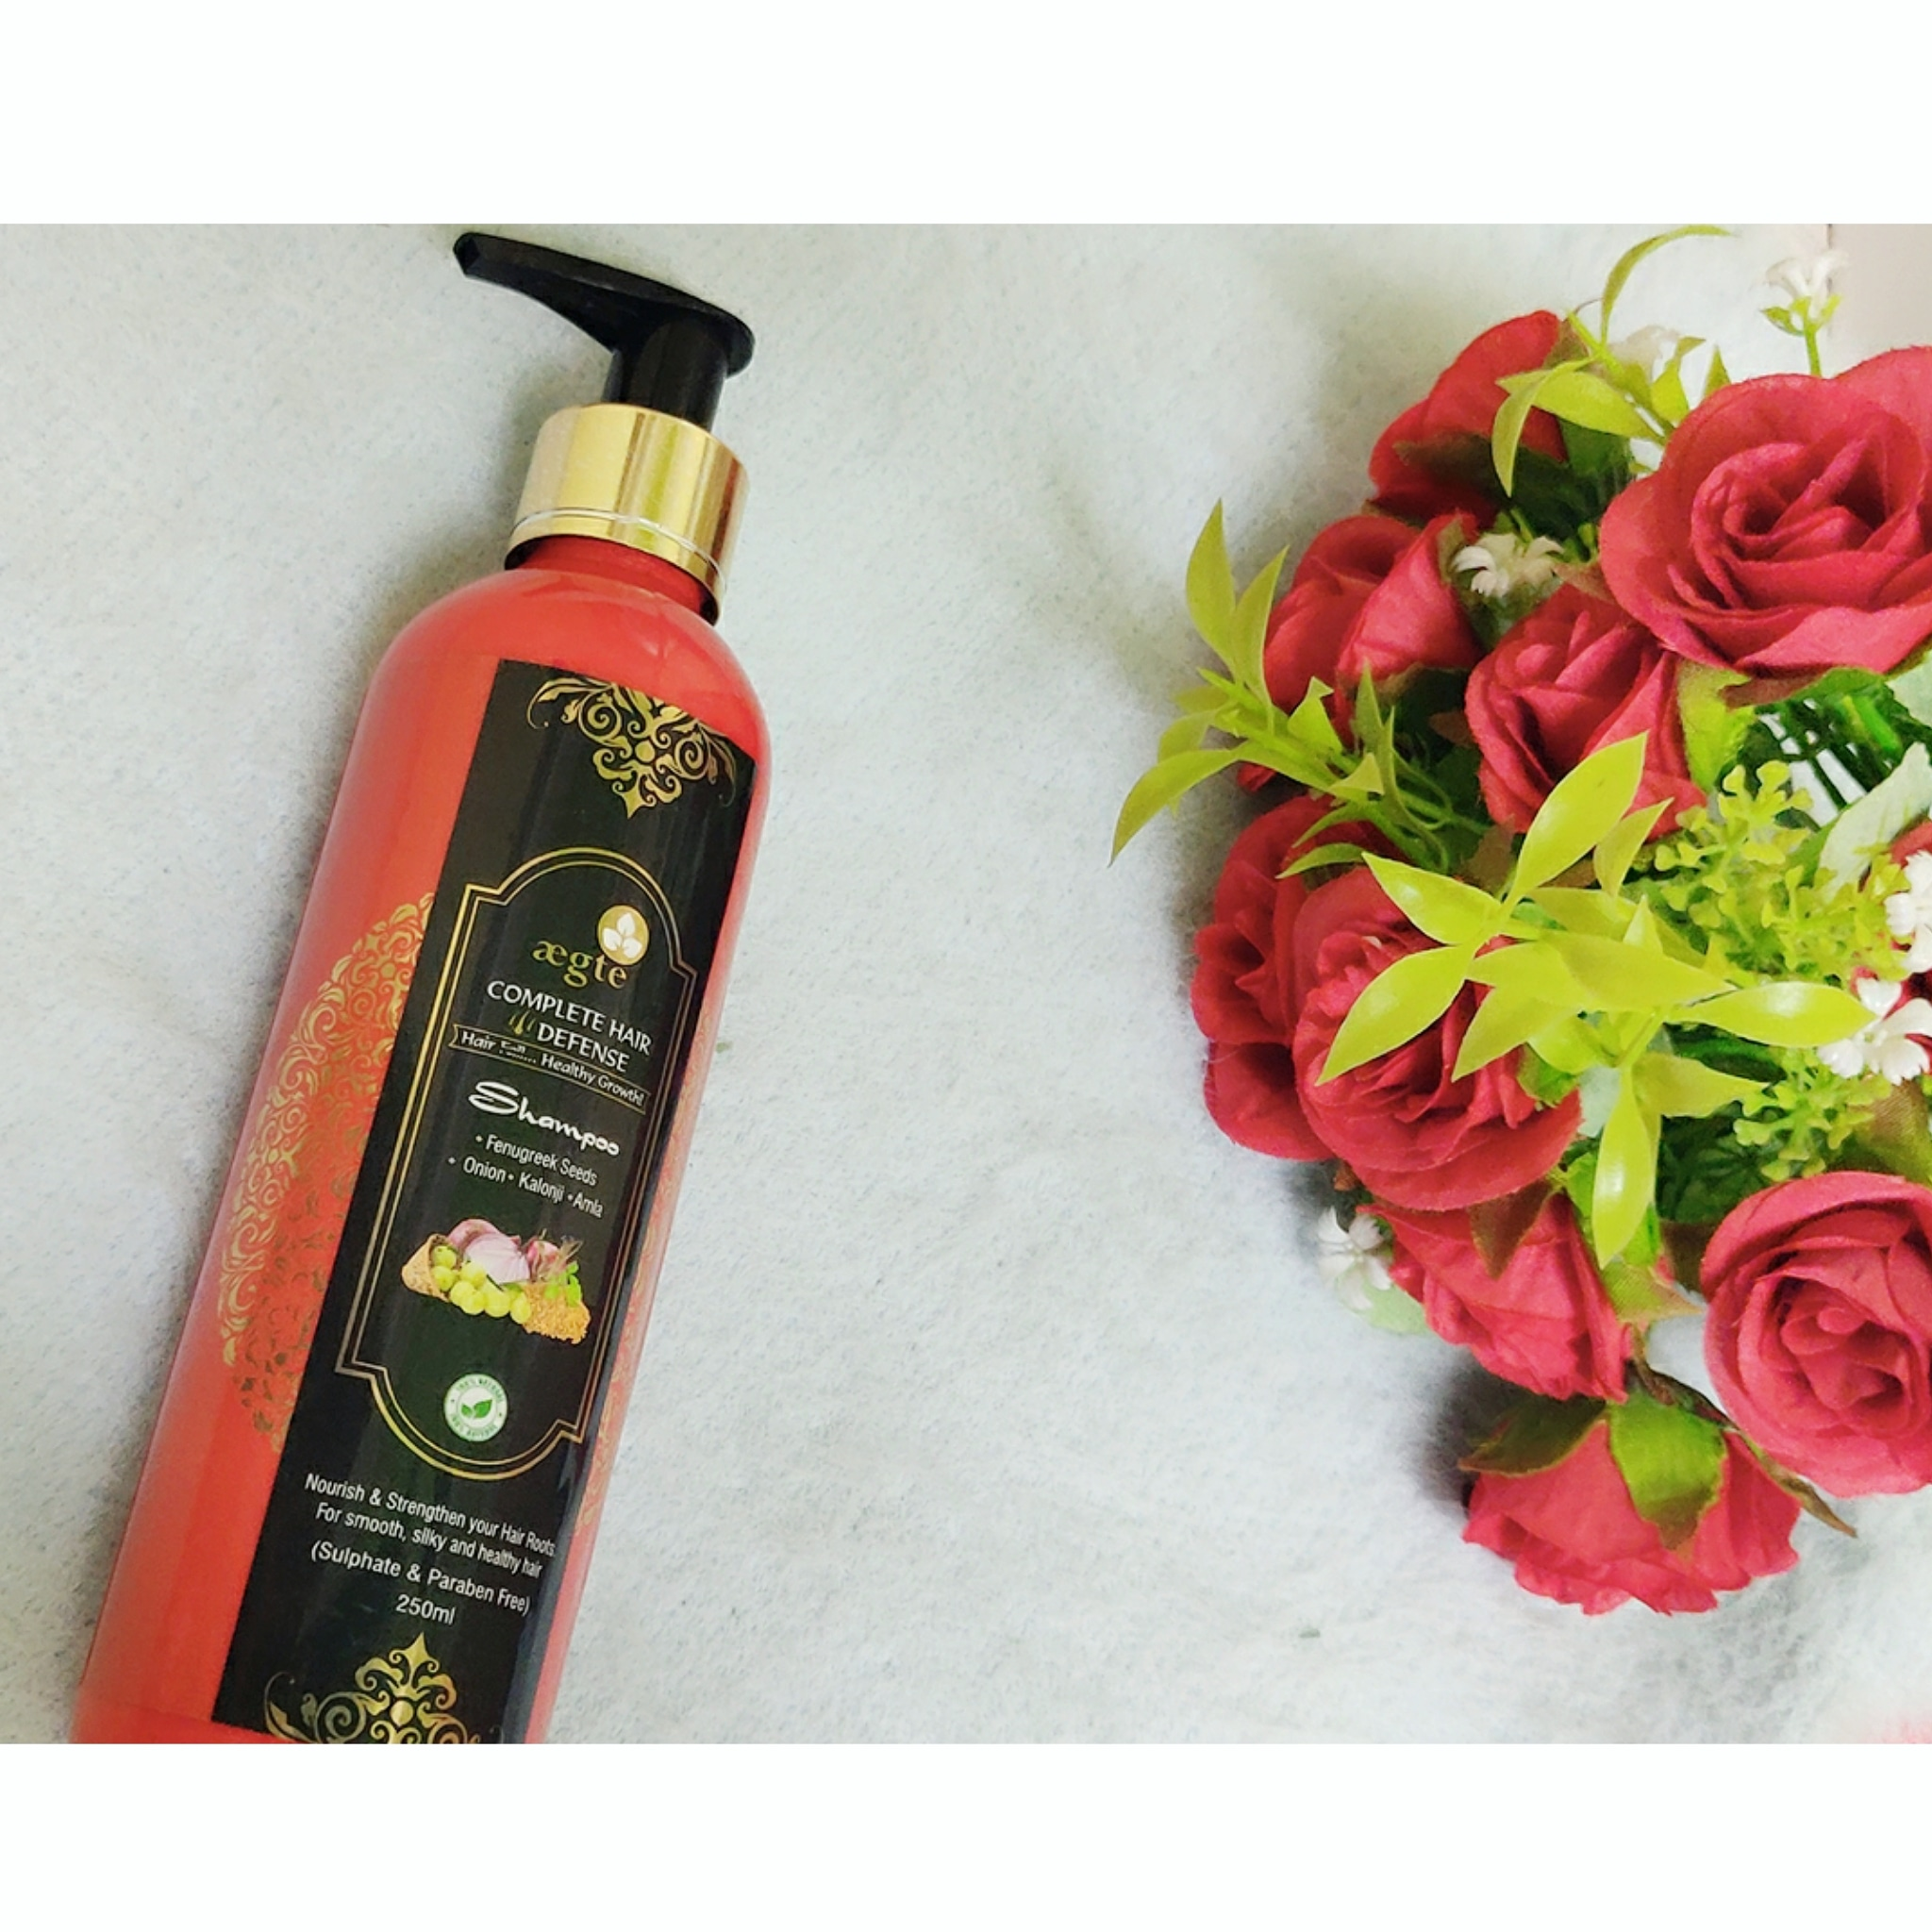 Aegte Complete Hair Defense Shampoo Enriched with Red Onion, Fenugreek Seeds, Kalonji & Amla -Fab Shampoo!-By navoditagahlot